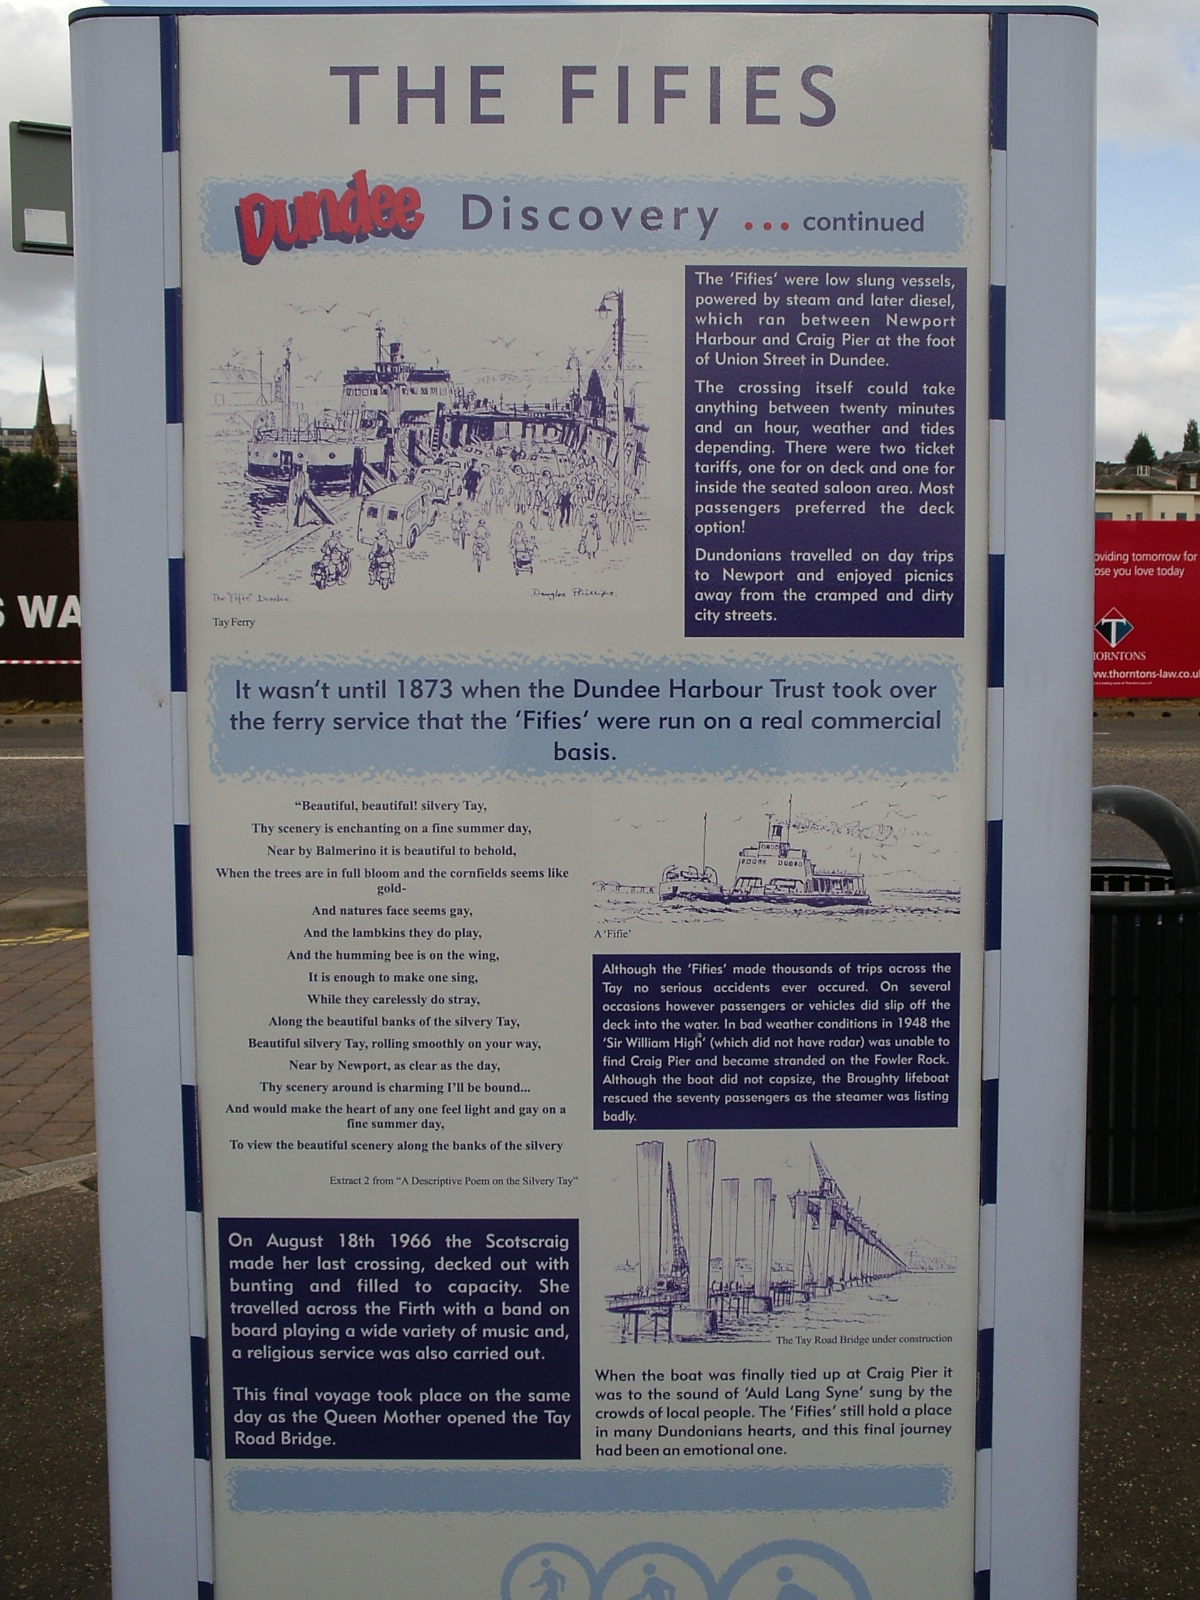 History of Dundee - the Fifies